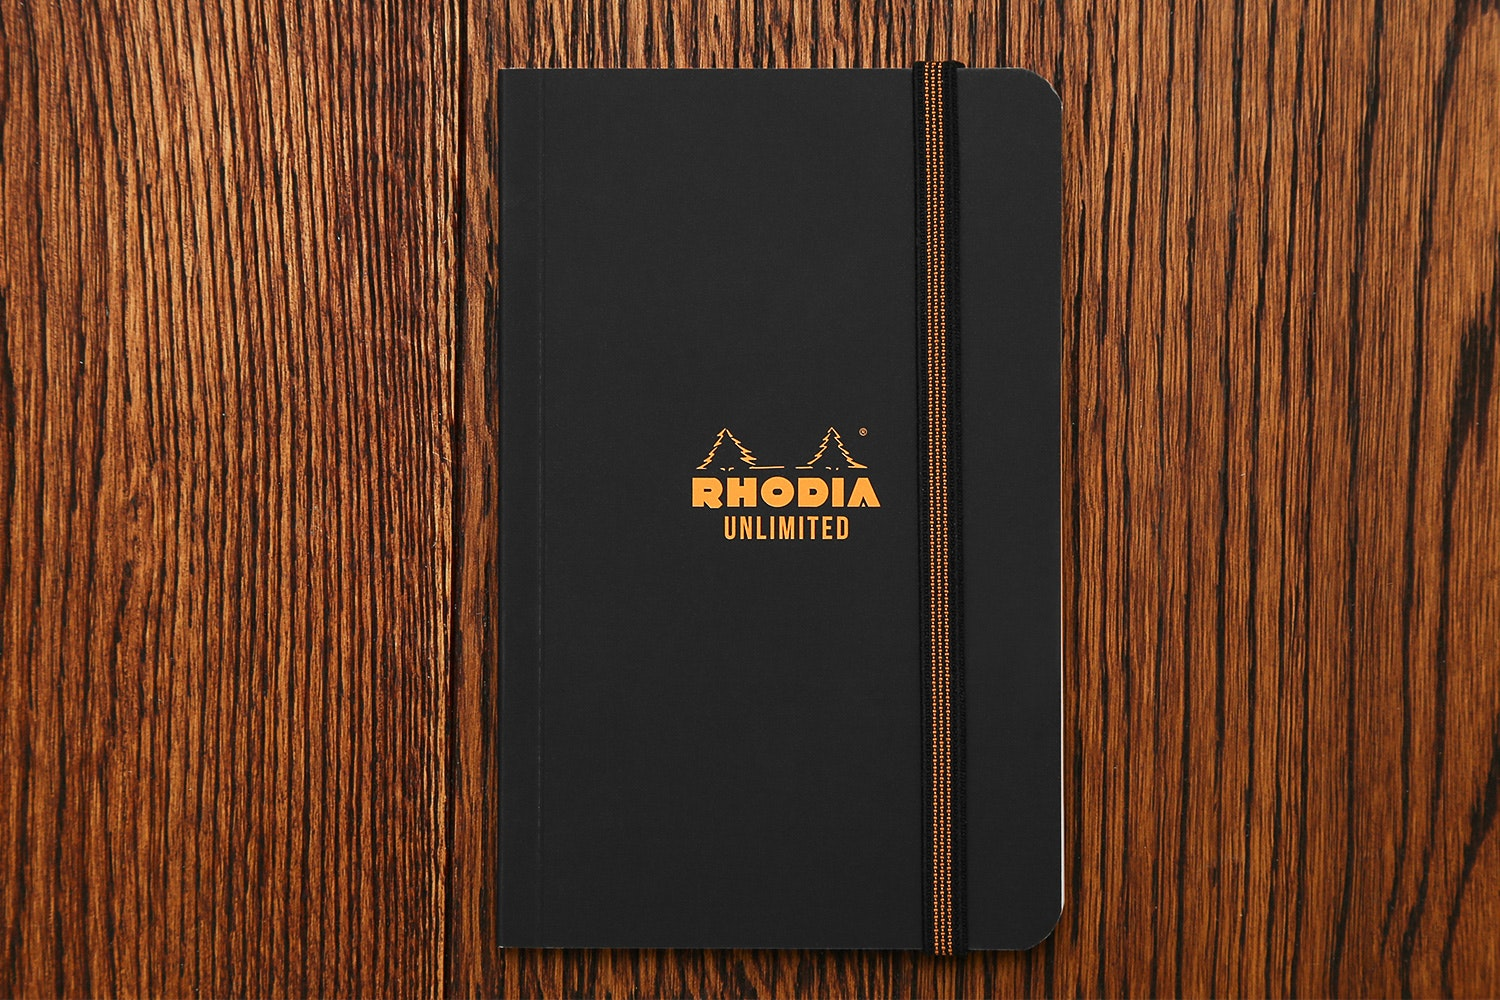 Rhodia Unlimited Black / Lined